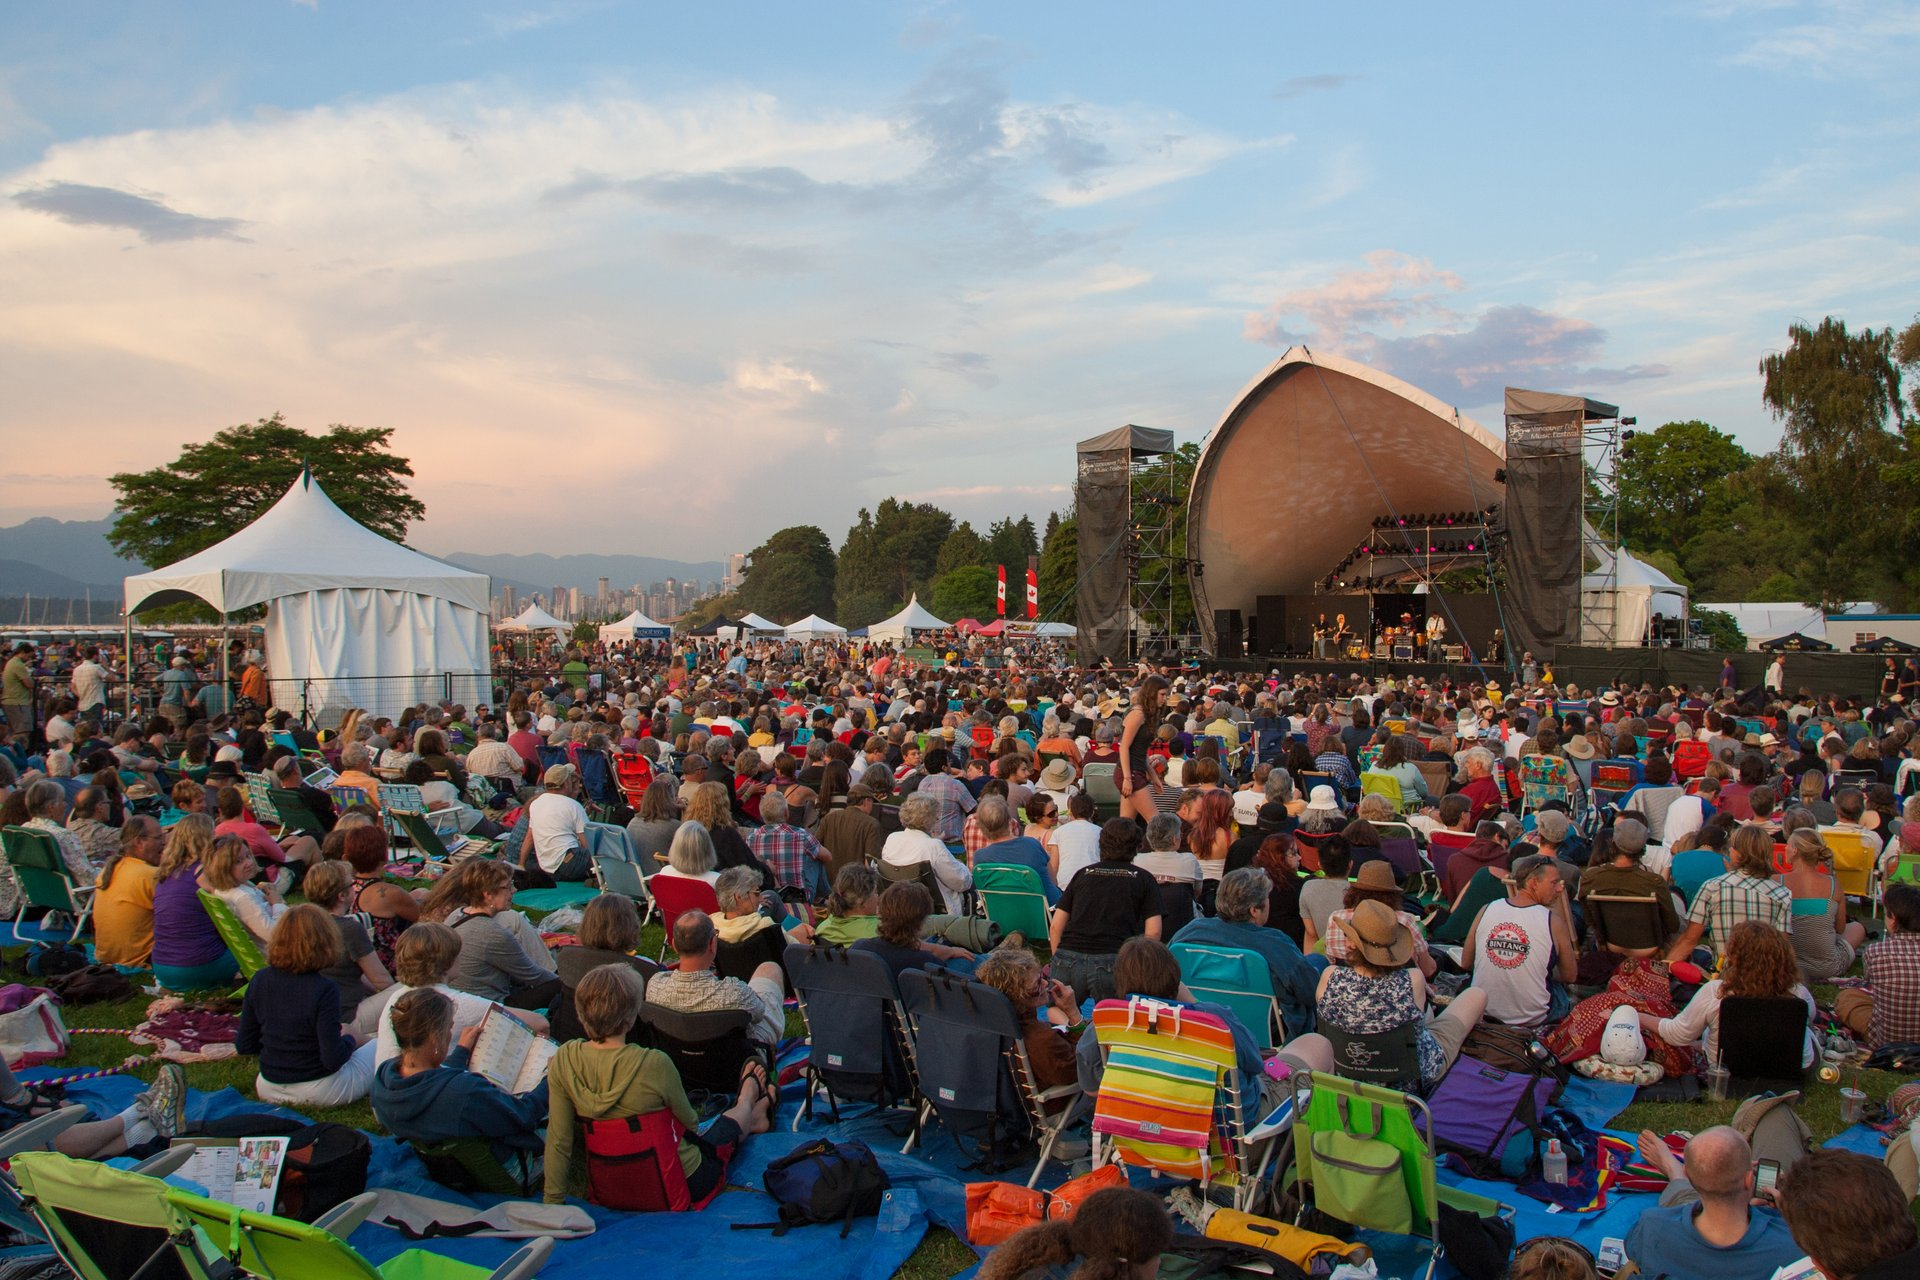 Best time for Vancouver Folk Music Festival 2020